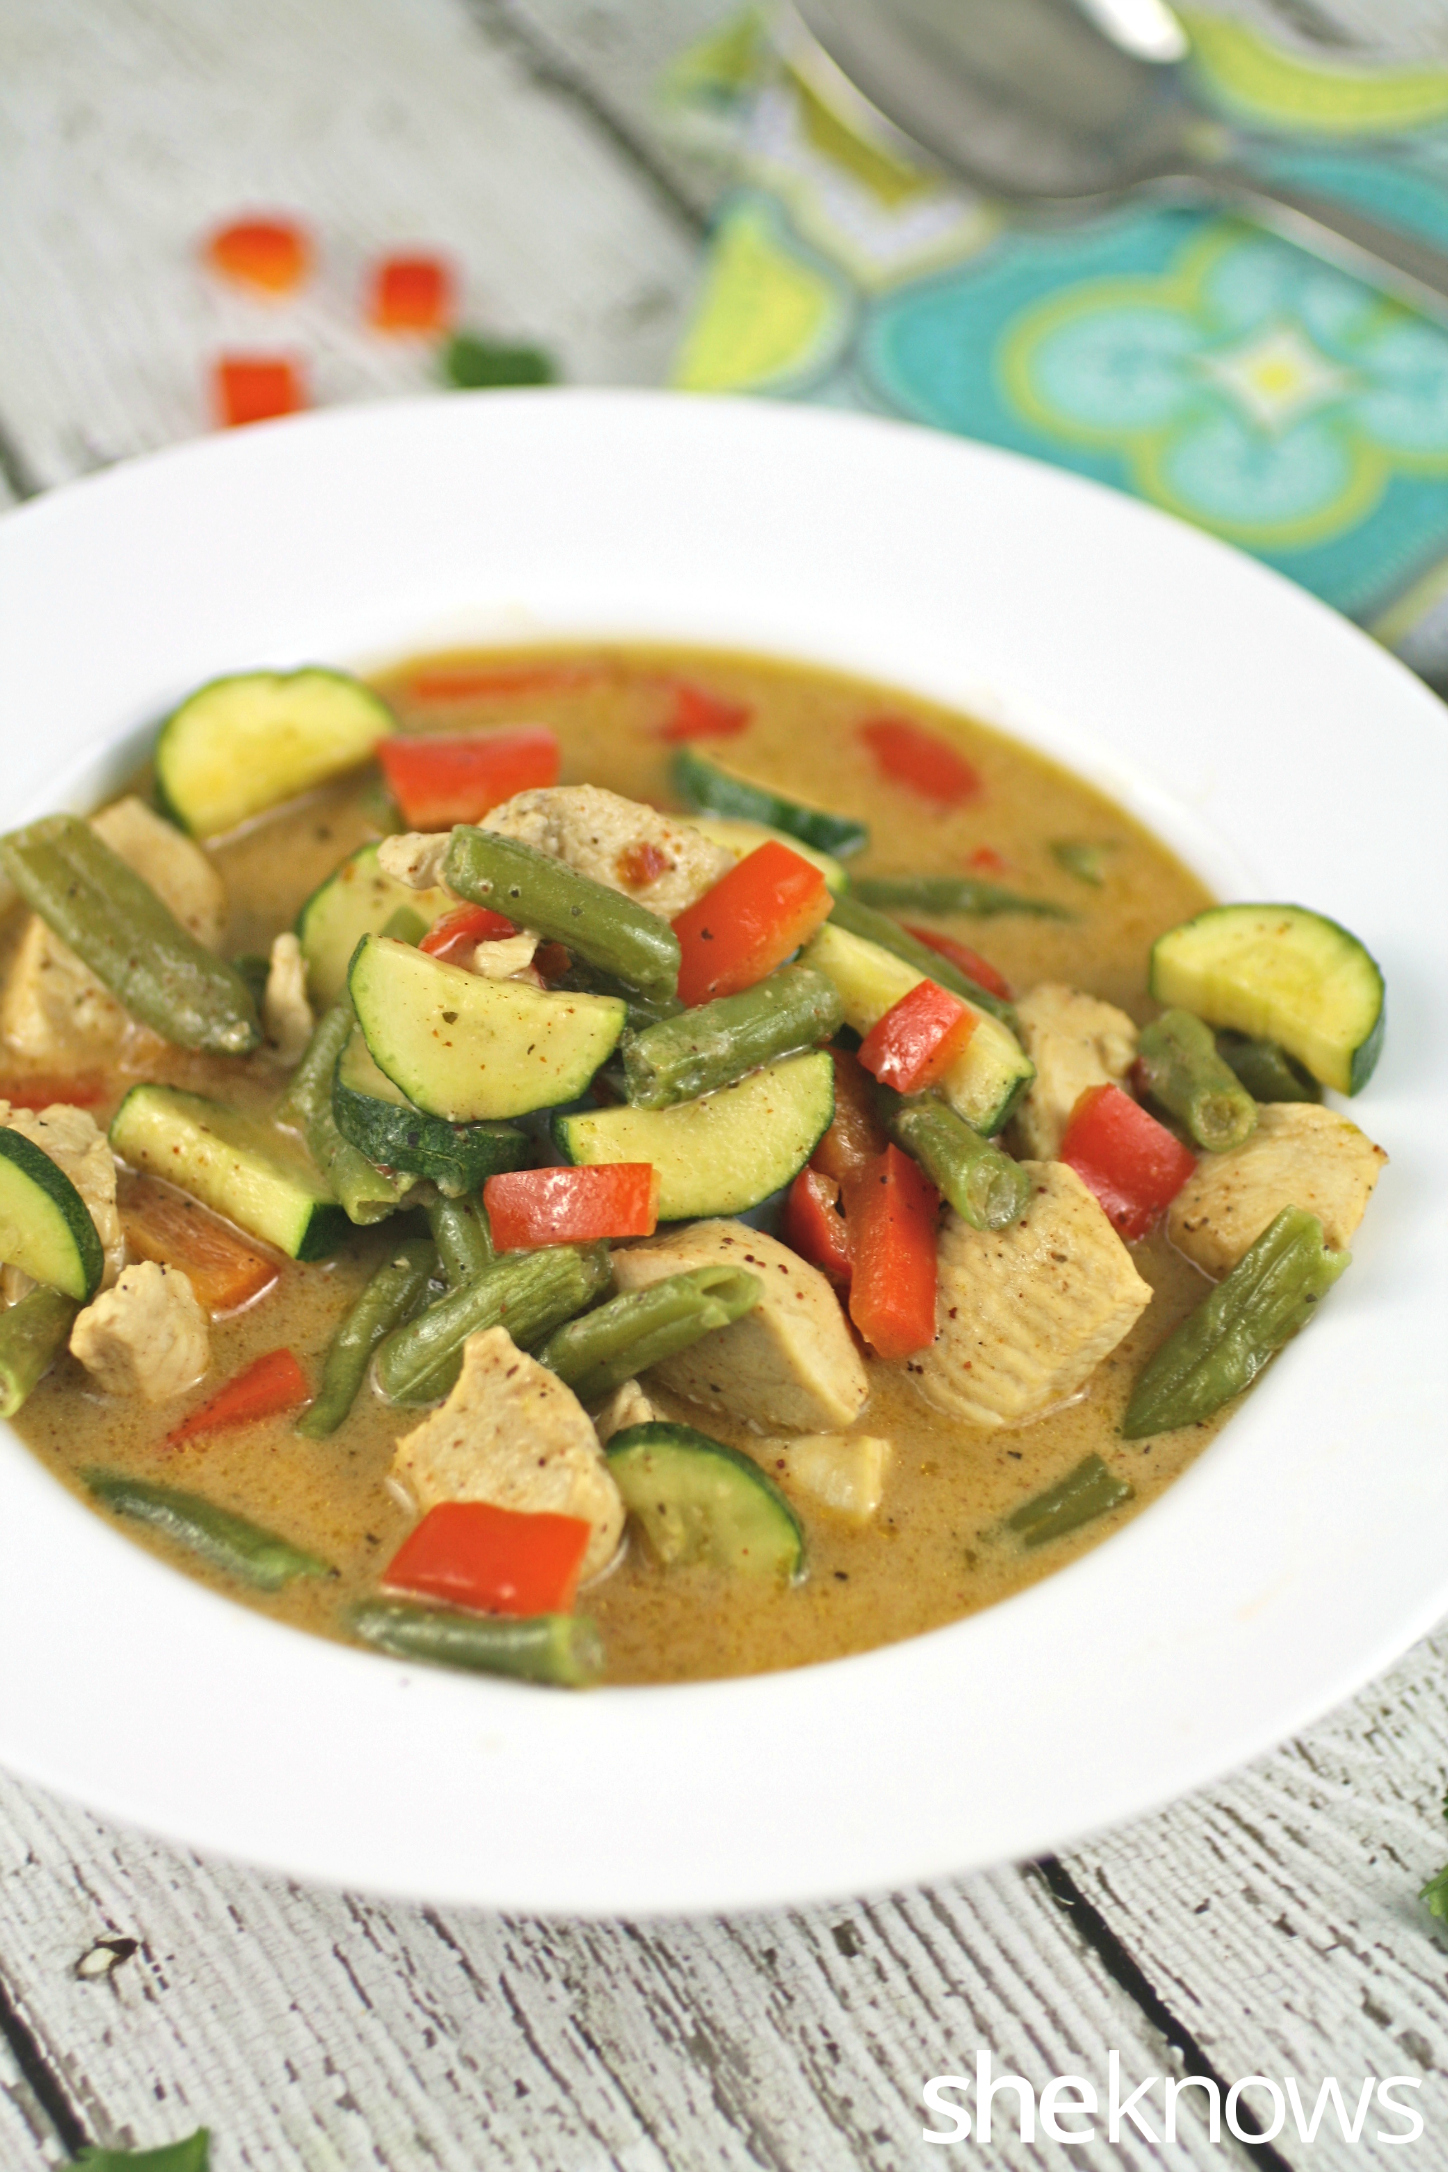 Panang curry with chicken is a delight for the senses